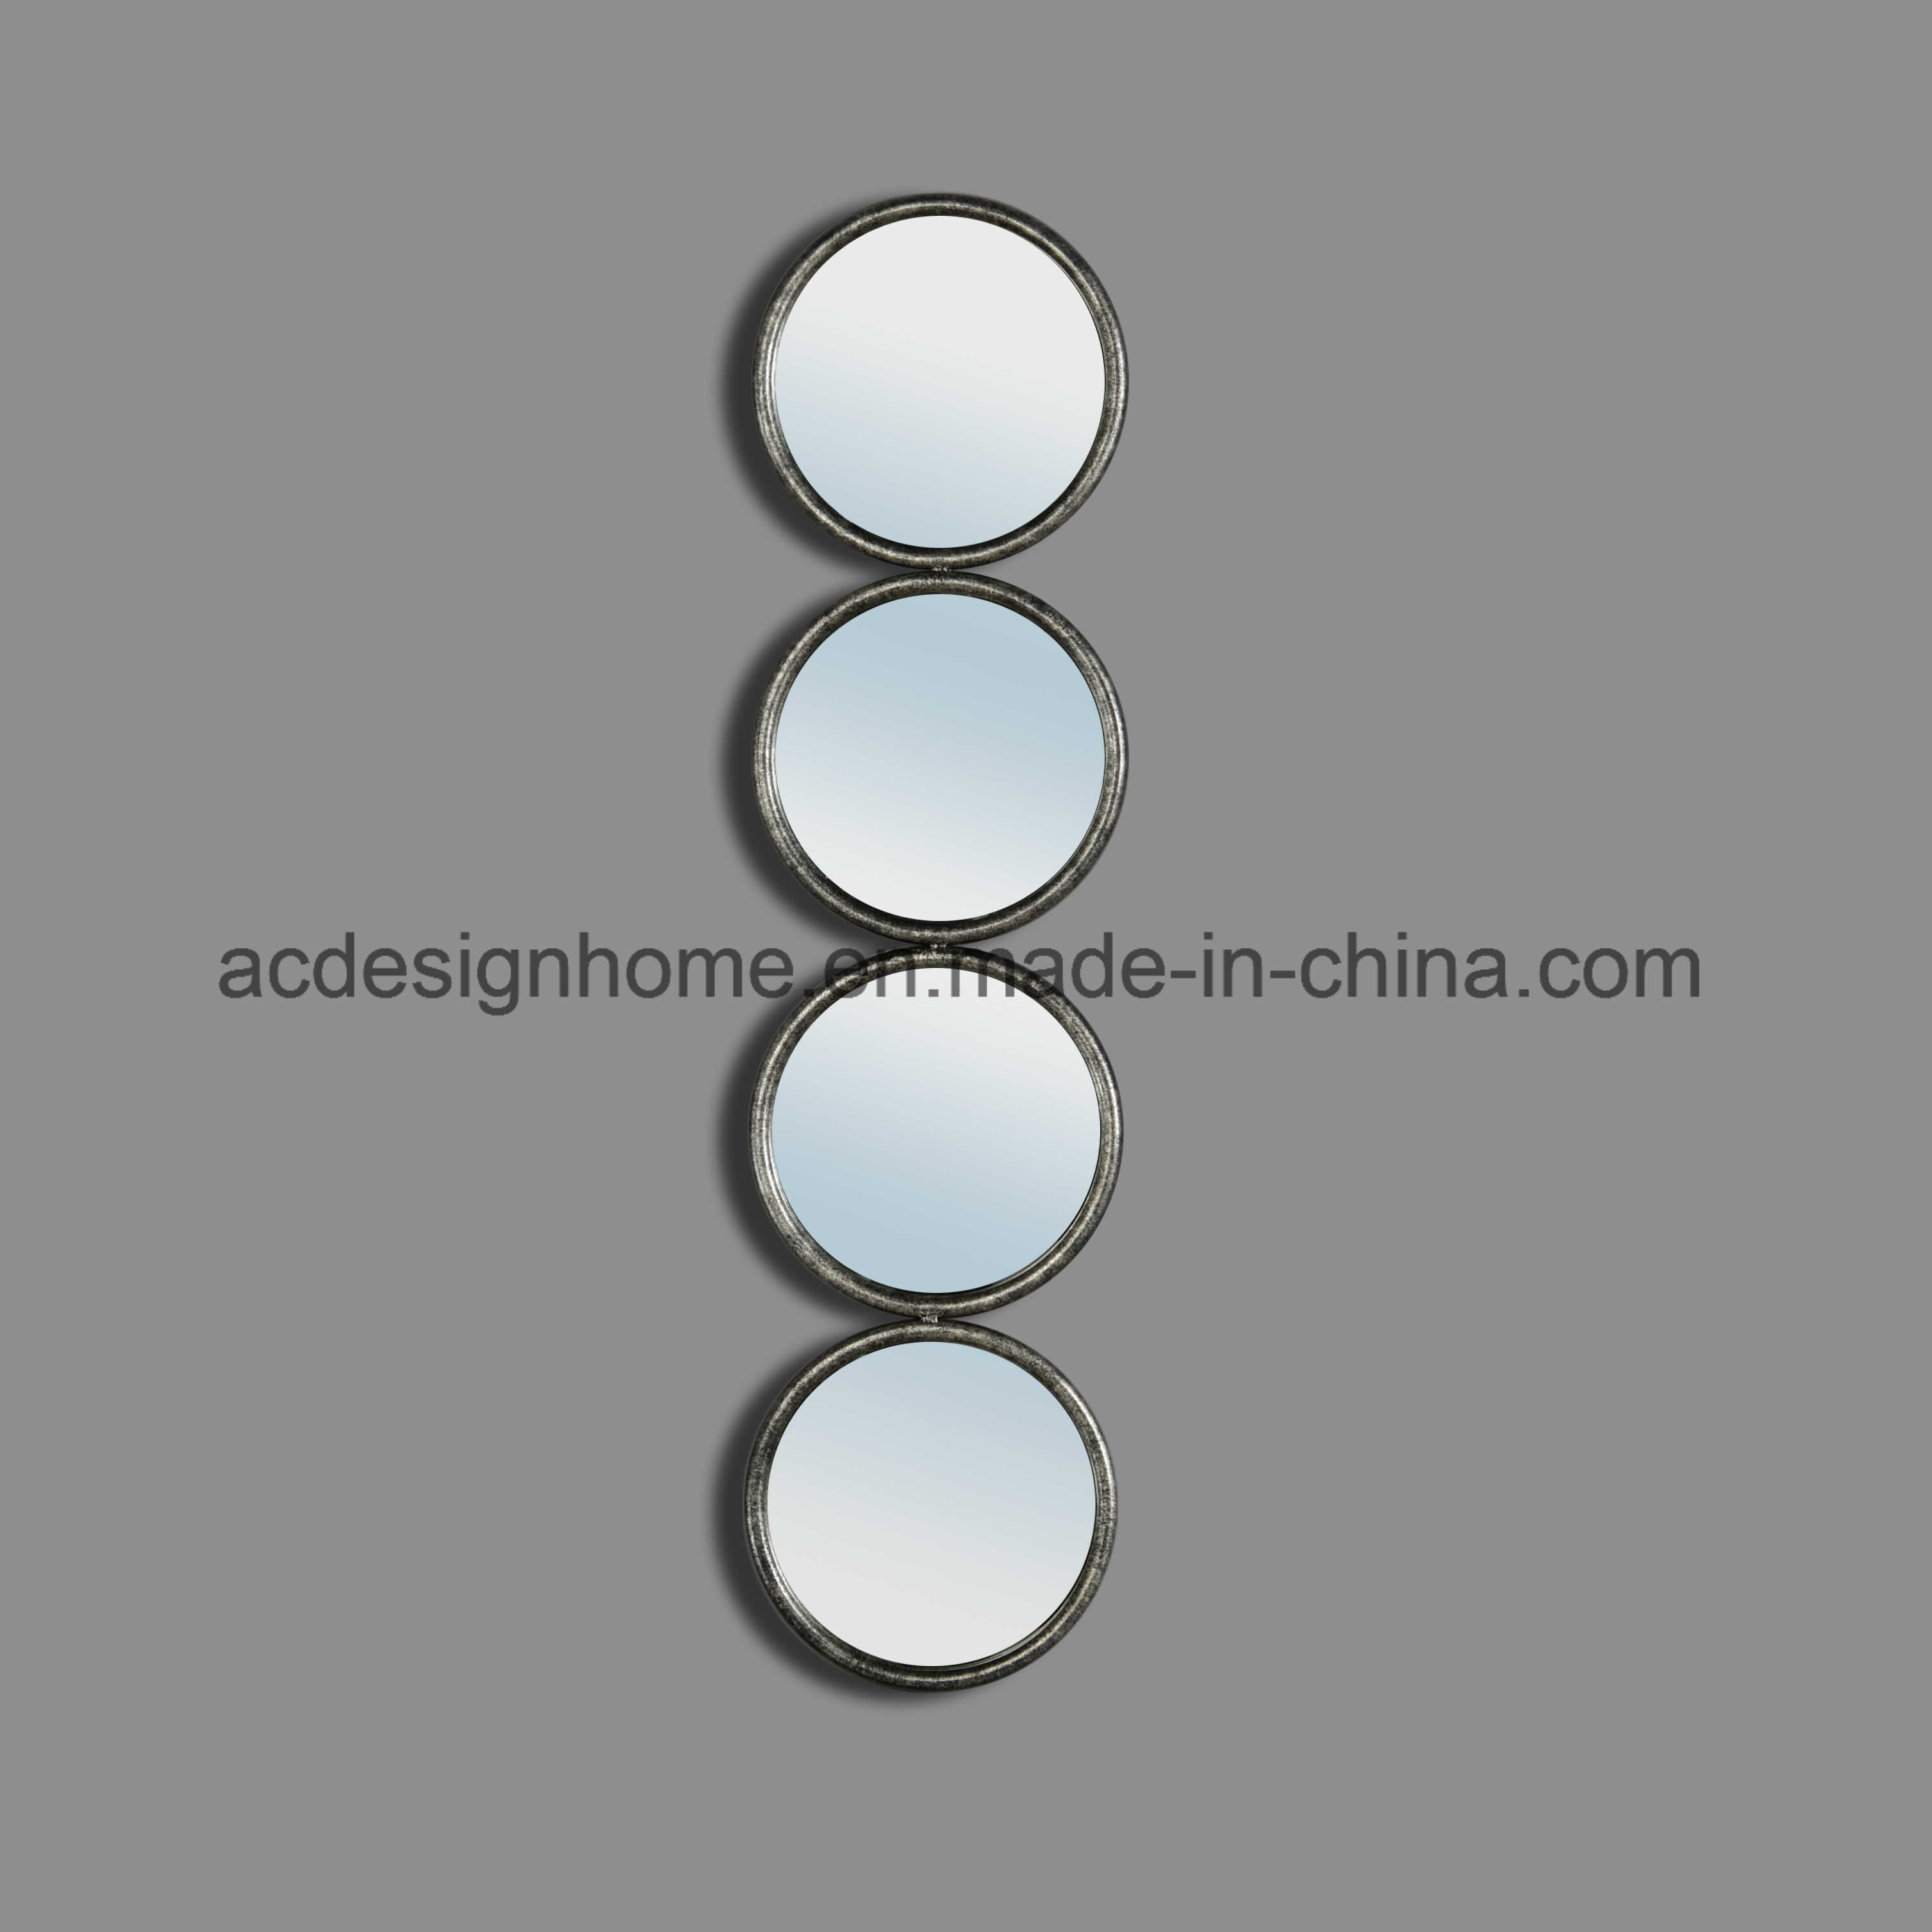 [Hot Item] Simple Modern Elegant Best Price High Quality Interior  Decorative Vertical Four Round Mirror As One Hanging Wall Mirrors With Regard To Vertical Round Wall Mirrors (Image 1 of 20)